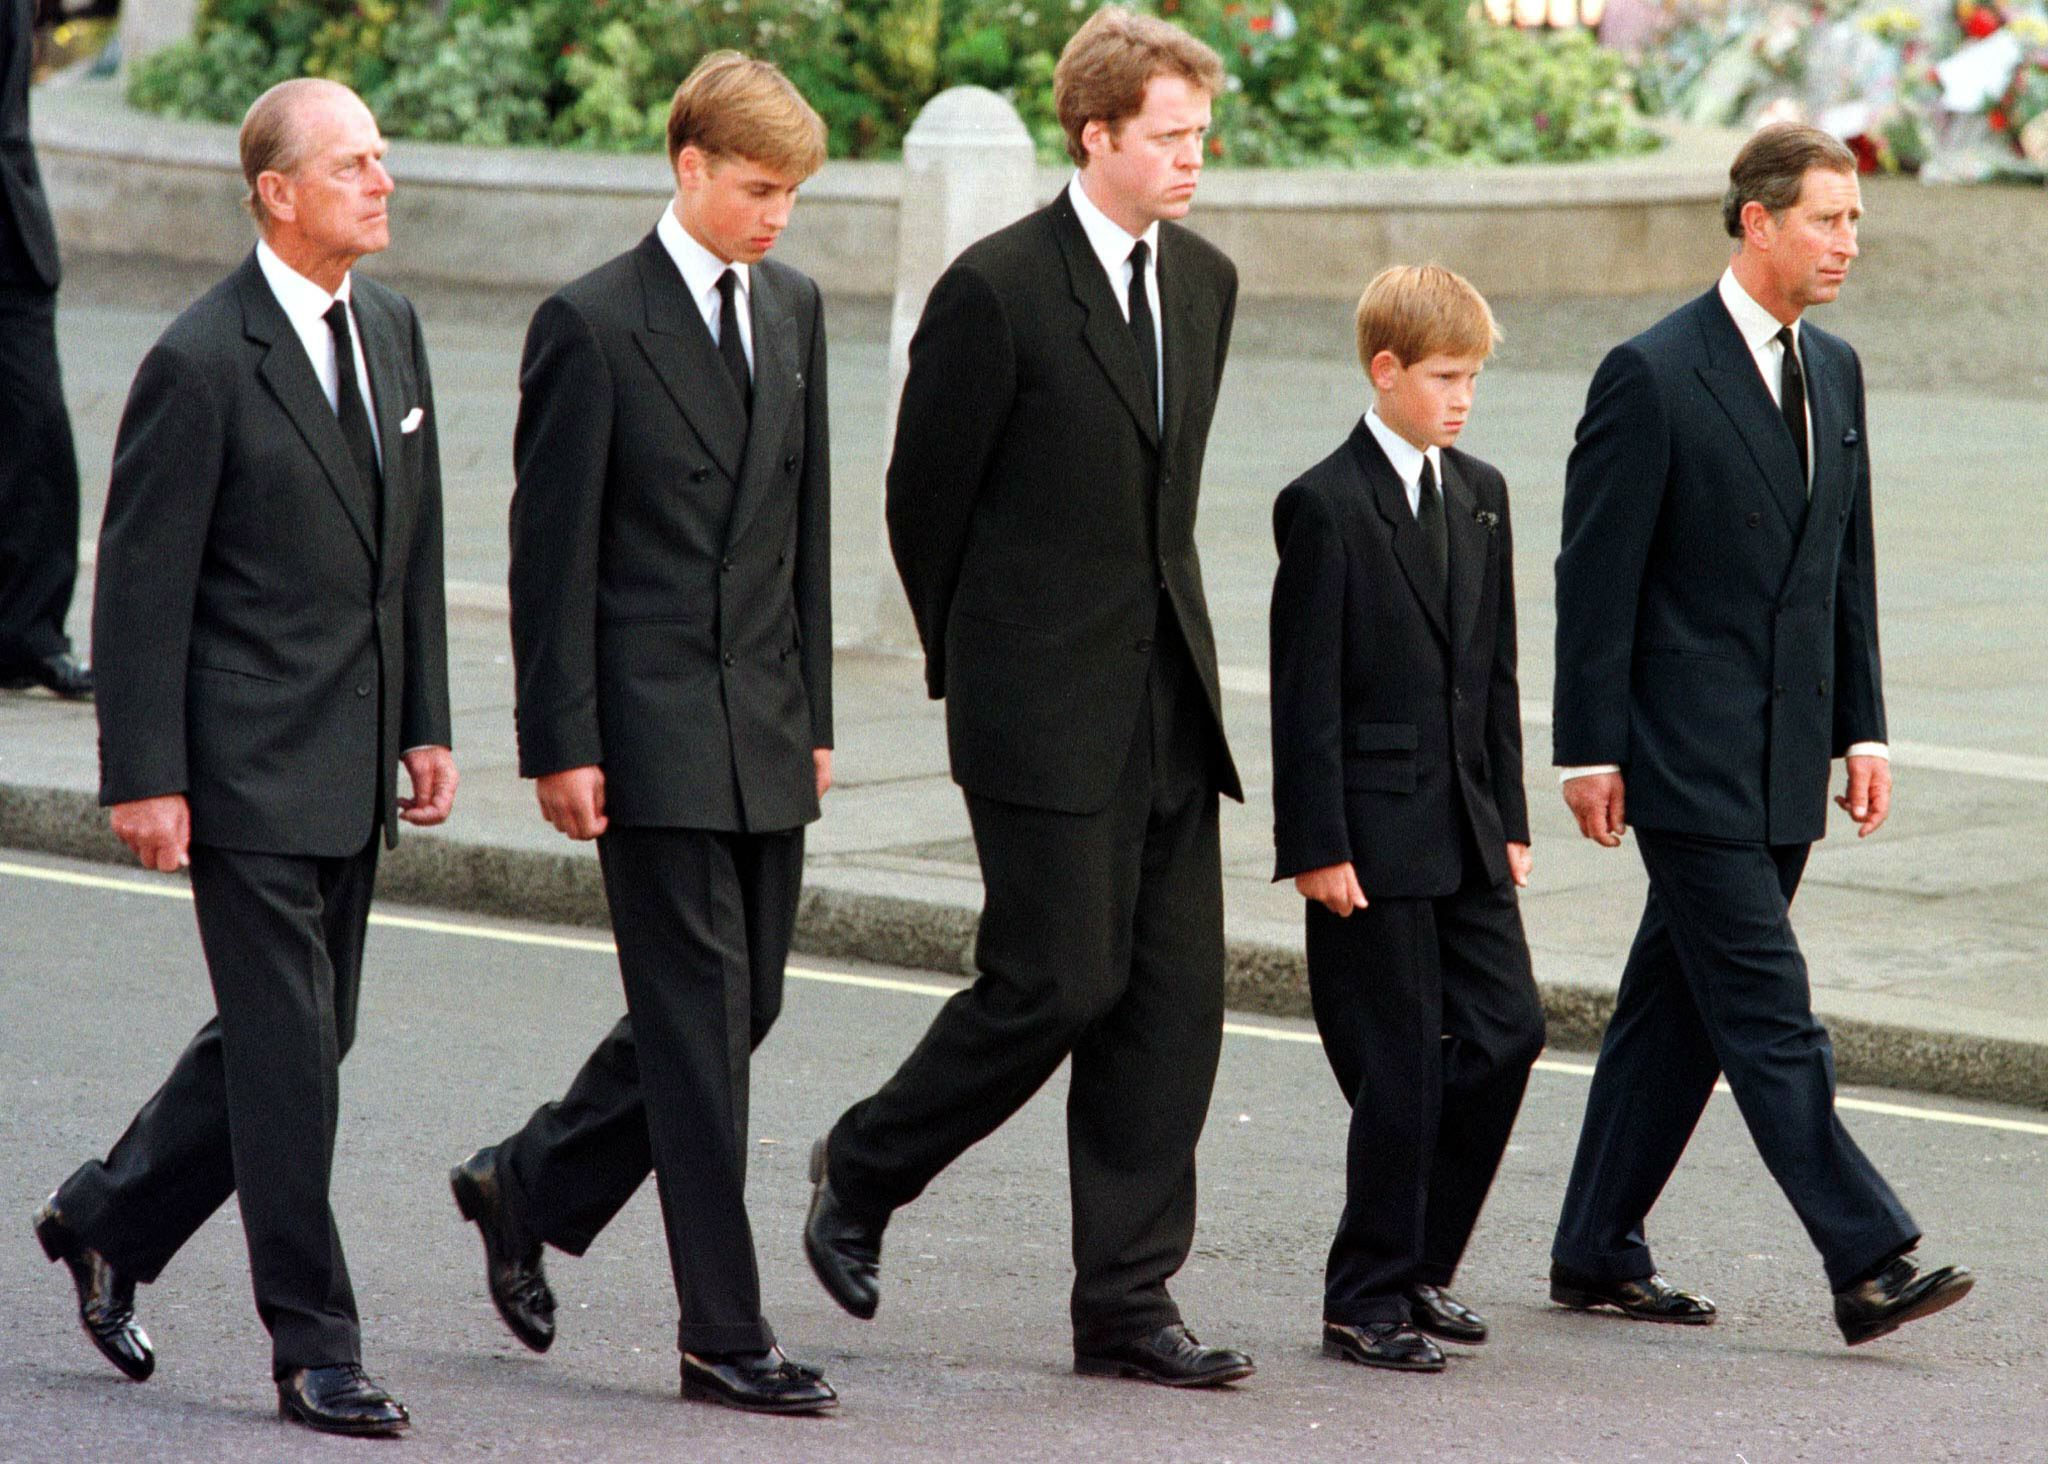 (L to R) The Duke of Edinburgh, Prince William, Earl Spencer, Prince Harry and Prince Charles walk outside Westminster Abbey during the funeral service for Diana, Princess of Wales.